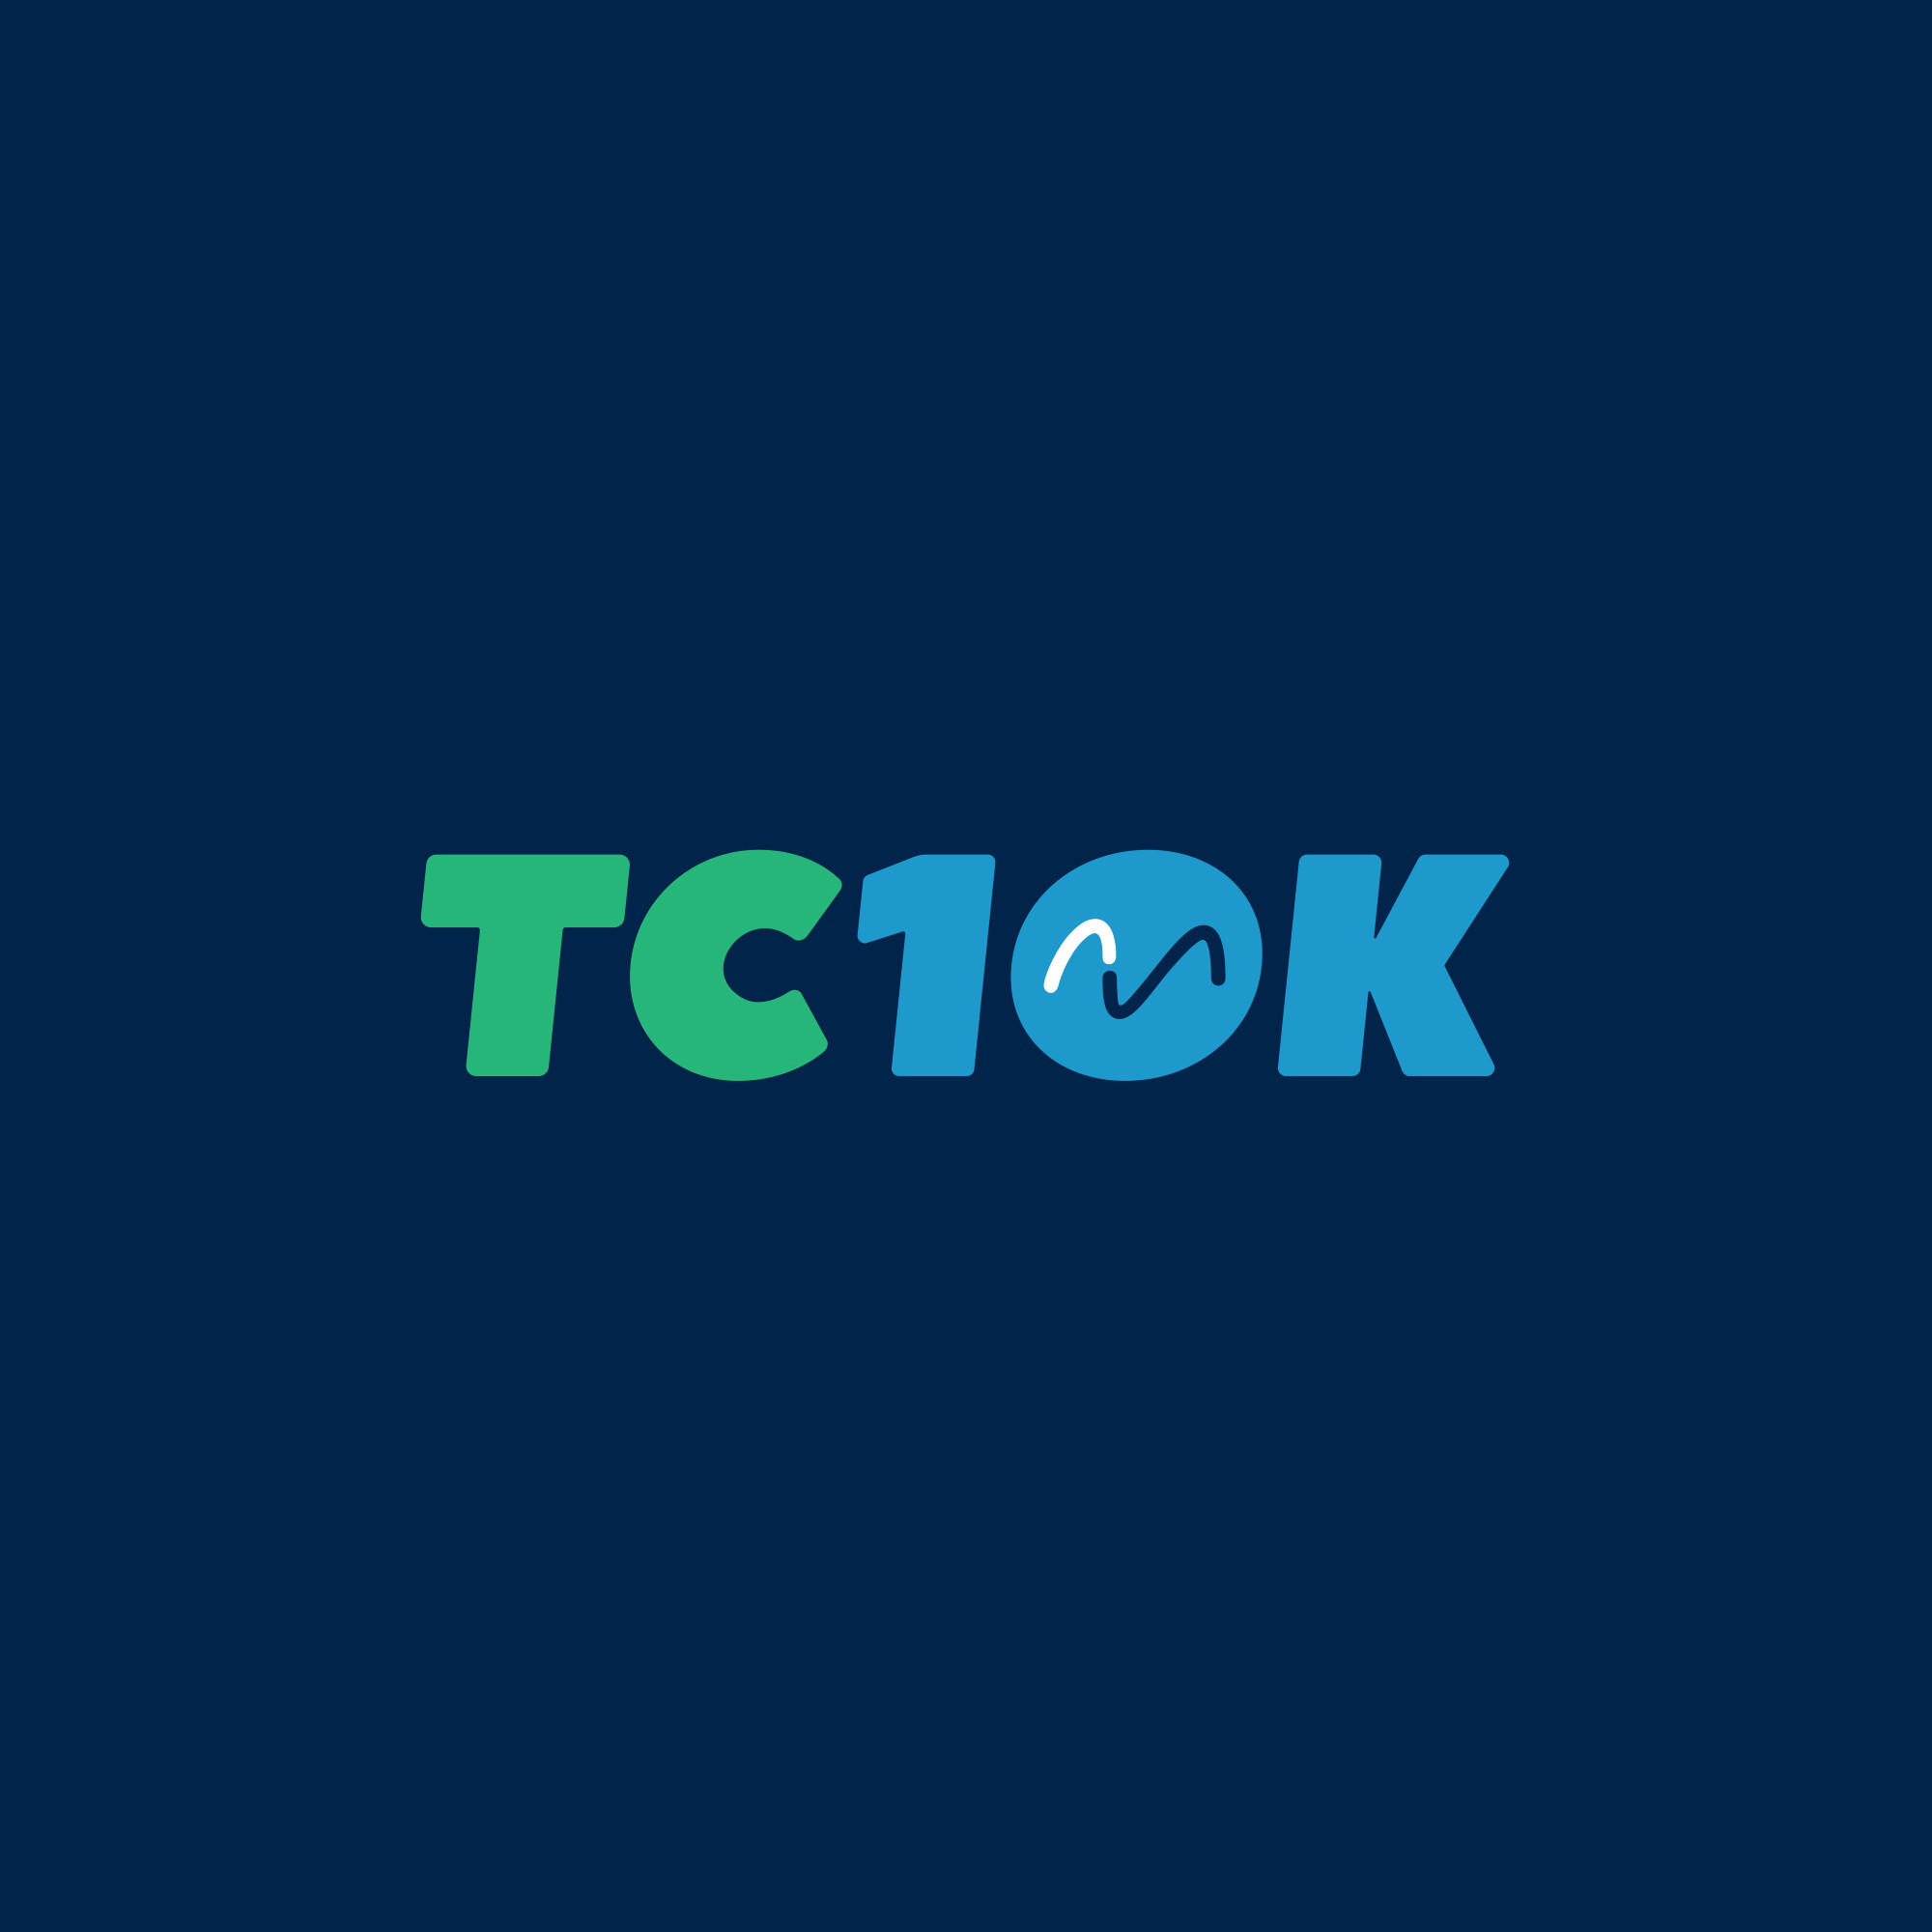 TC 10K! Join the Colwood Elementary team!